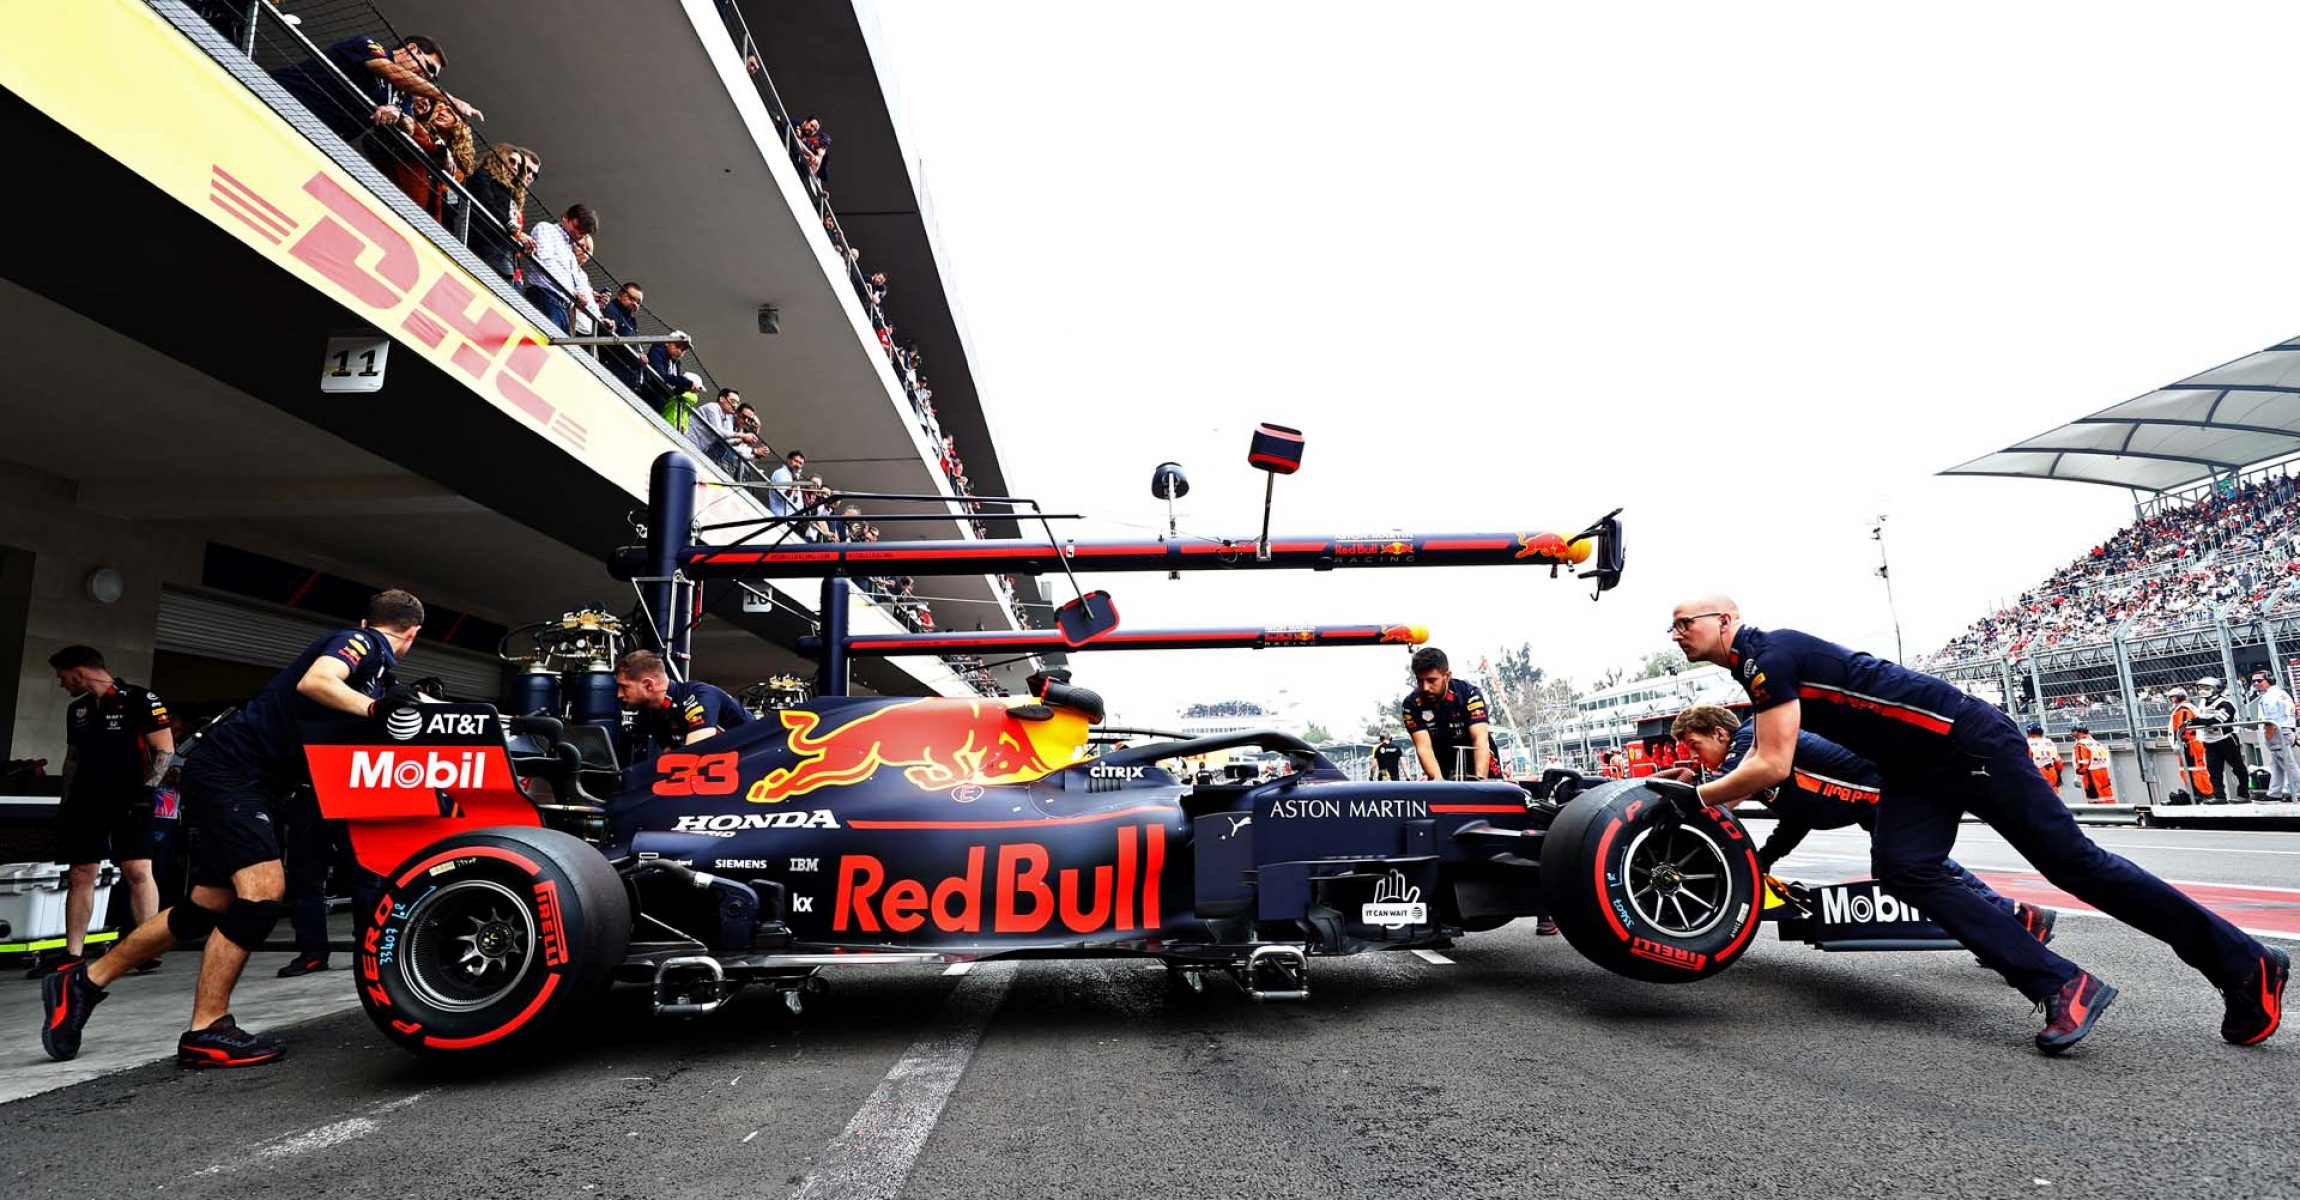 MEXICO CITY, MEXICO - OCTOBER 26: Max Verstappen of the Netherlands driving the (33) Aston Martin Red Bull Racing RB15 is pushed back into the garage during qualifying for the F1 Grand Prix of Mexico at Autodromo Hermanos Rodriguez on October 26, 2019 in Mexico City, Mexico. (Photo by Mark Thompson/Getty Images) // Getty Images / Red Bull Content Pool  // AP-21ZBGT2U12111 // Usage for editorial use only //